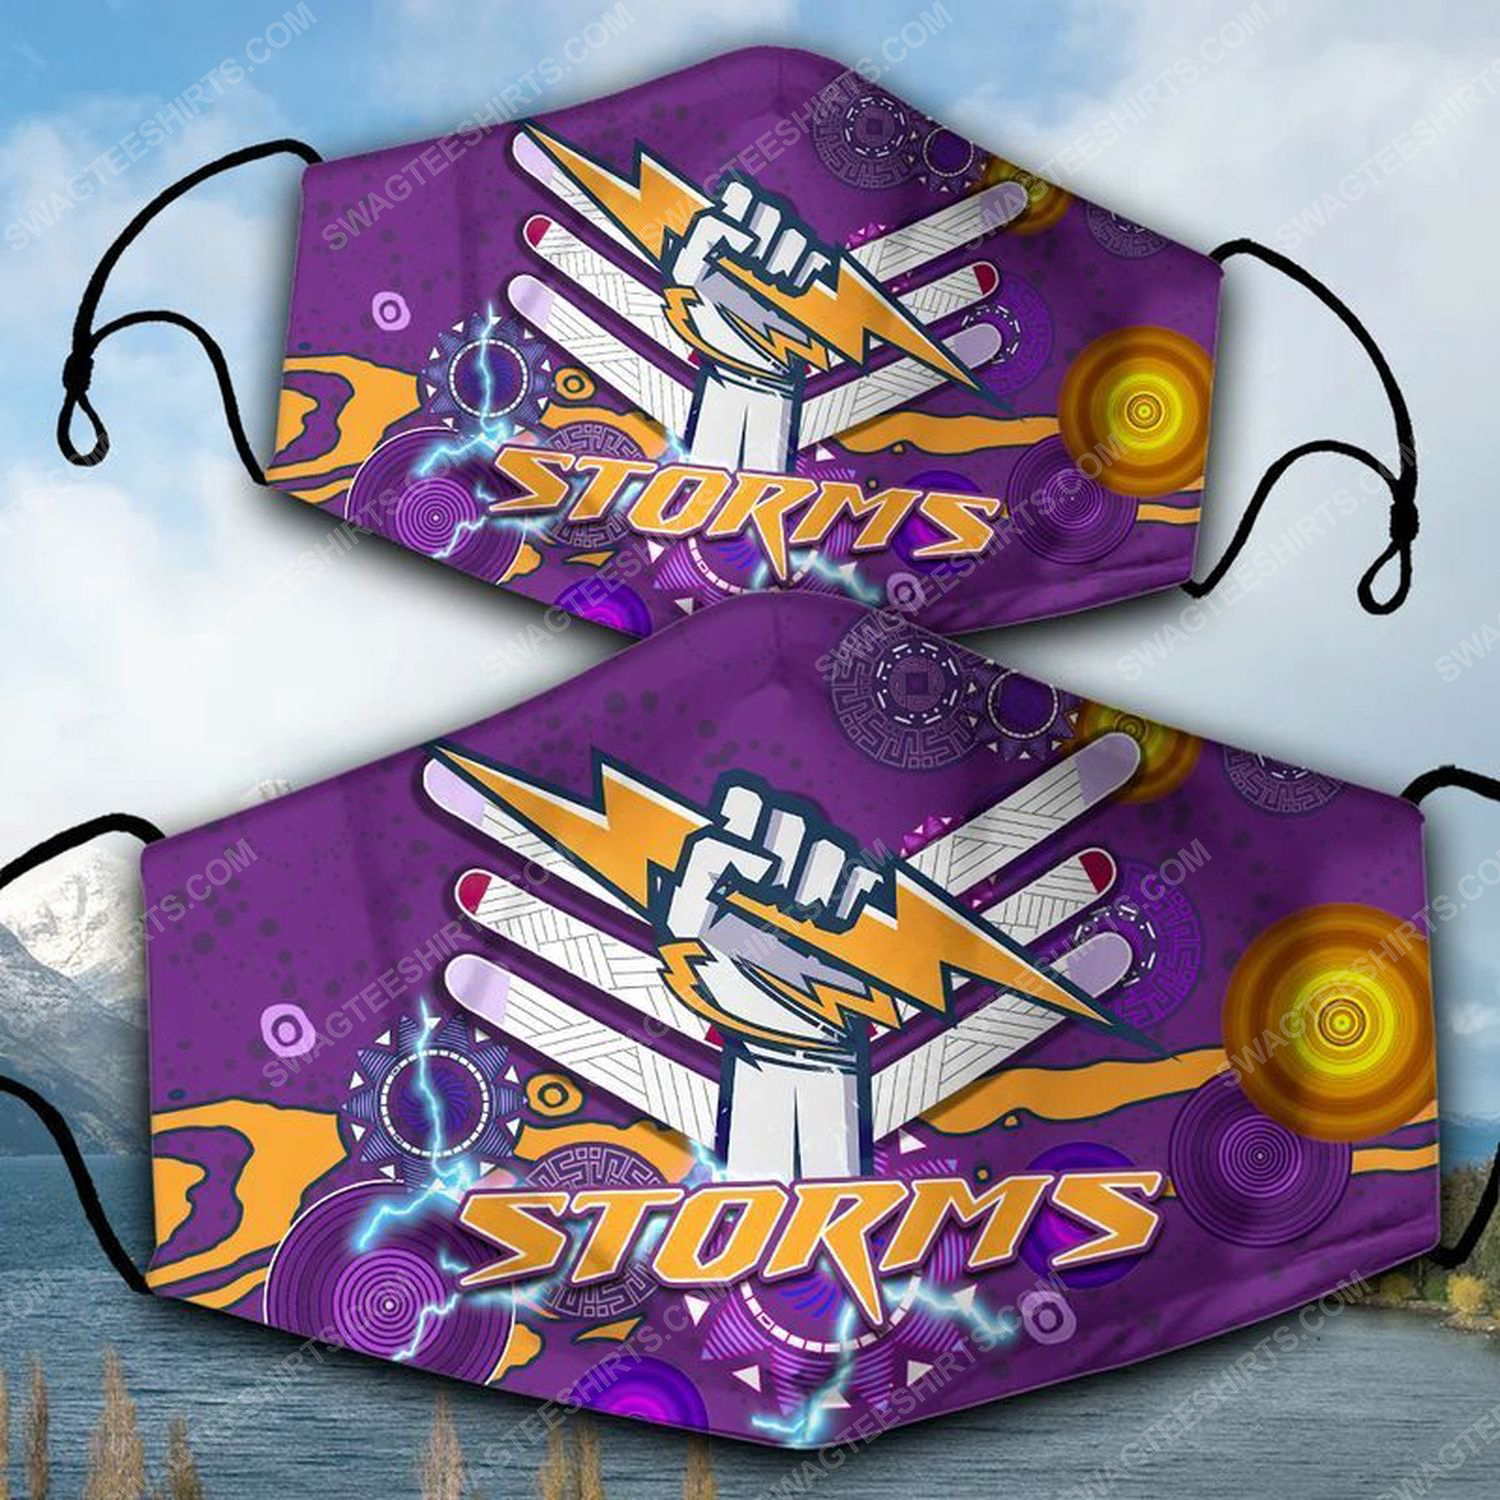 Melbourne storm football club face mask